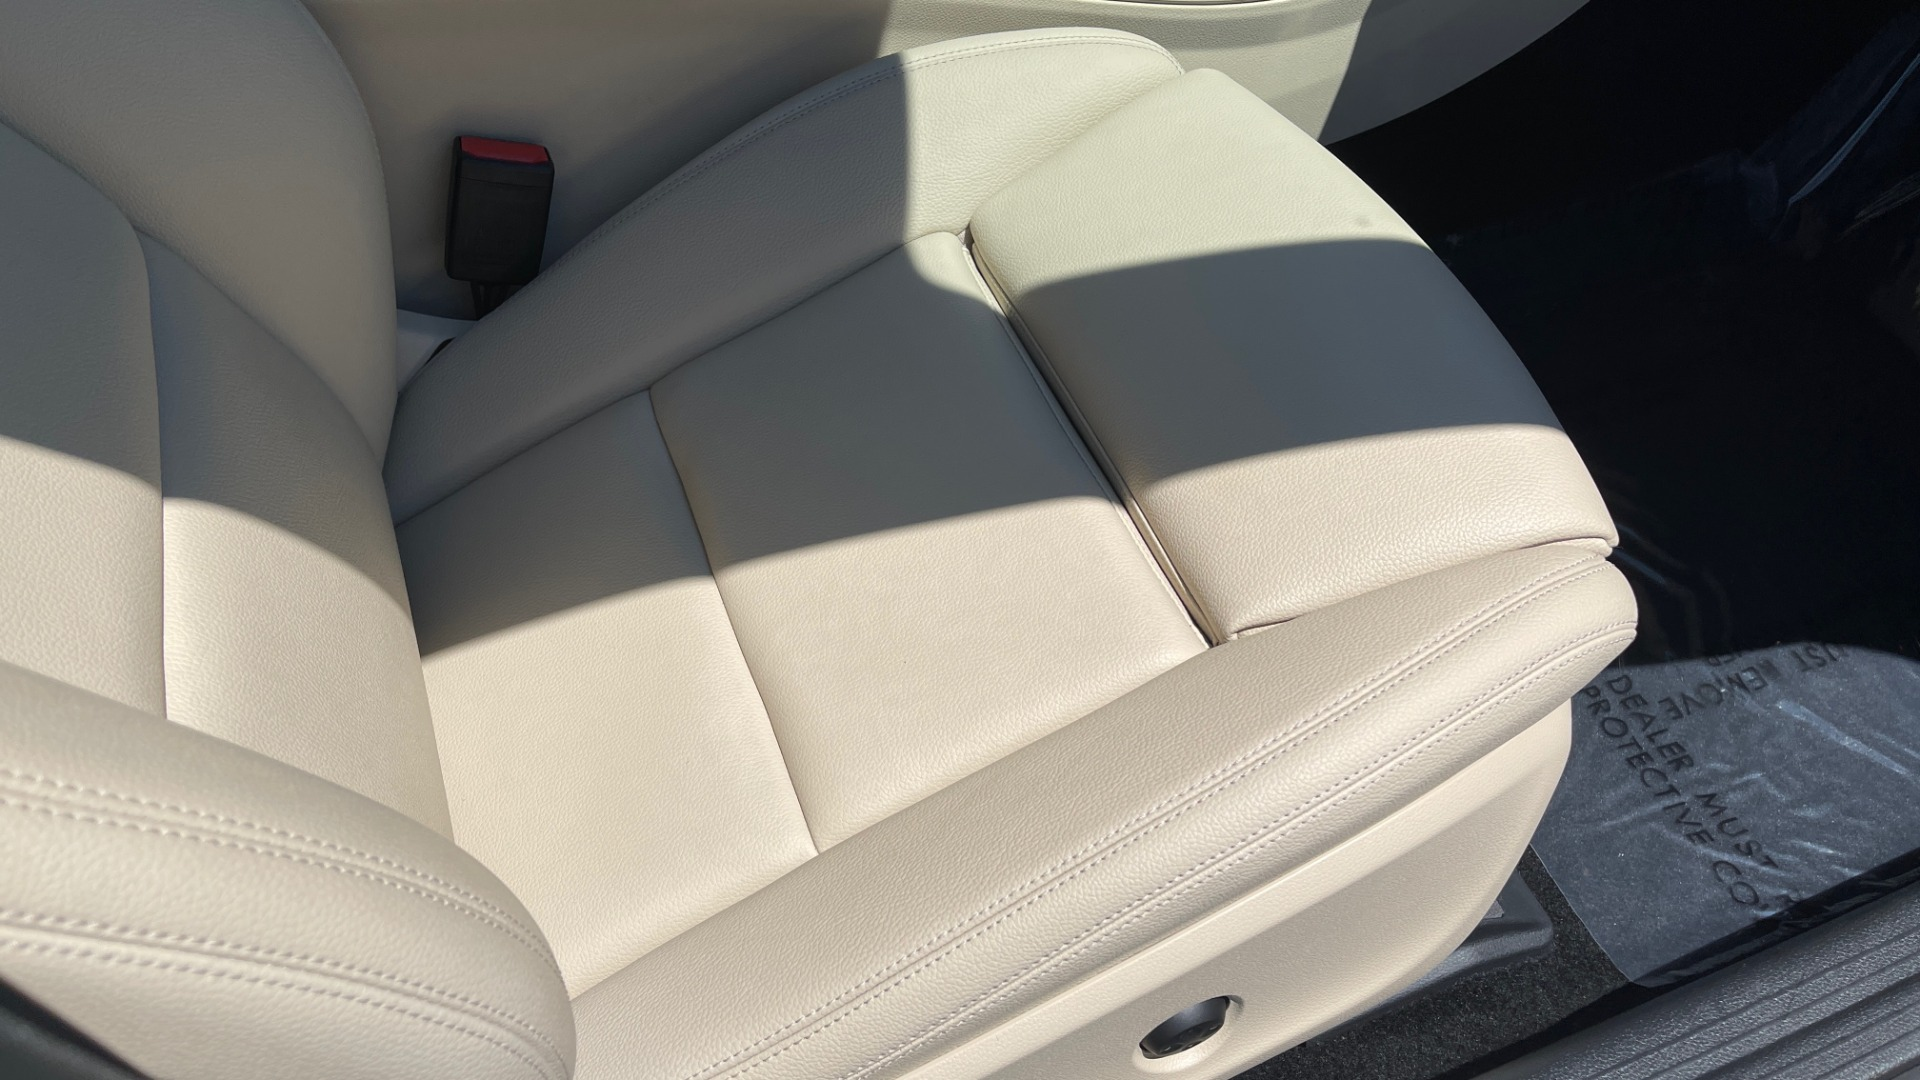 Used 2018 Mercedes-Benz CLA 250 PREMIUM / CONV PKG / APPLE / PANO-ROOF / REARVIEW for sale $29,795 at Formula Imports in Charlotte NC 28227 66